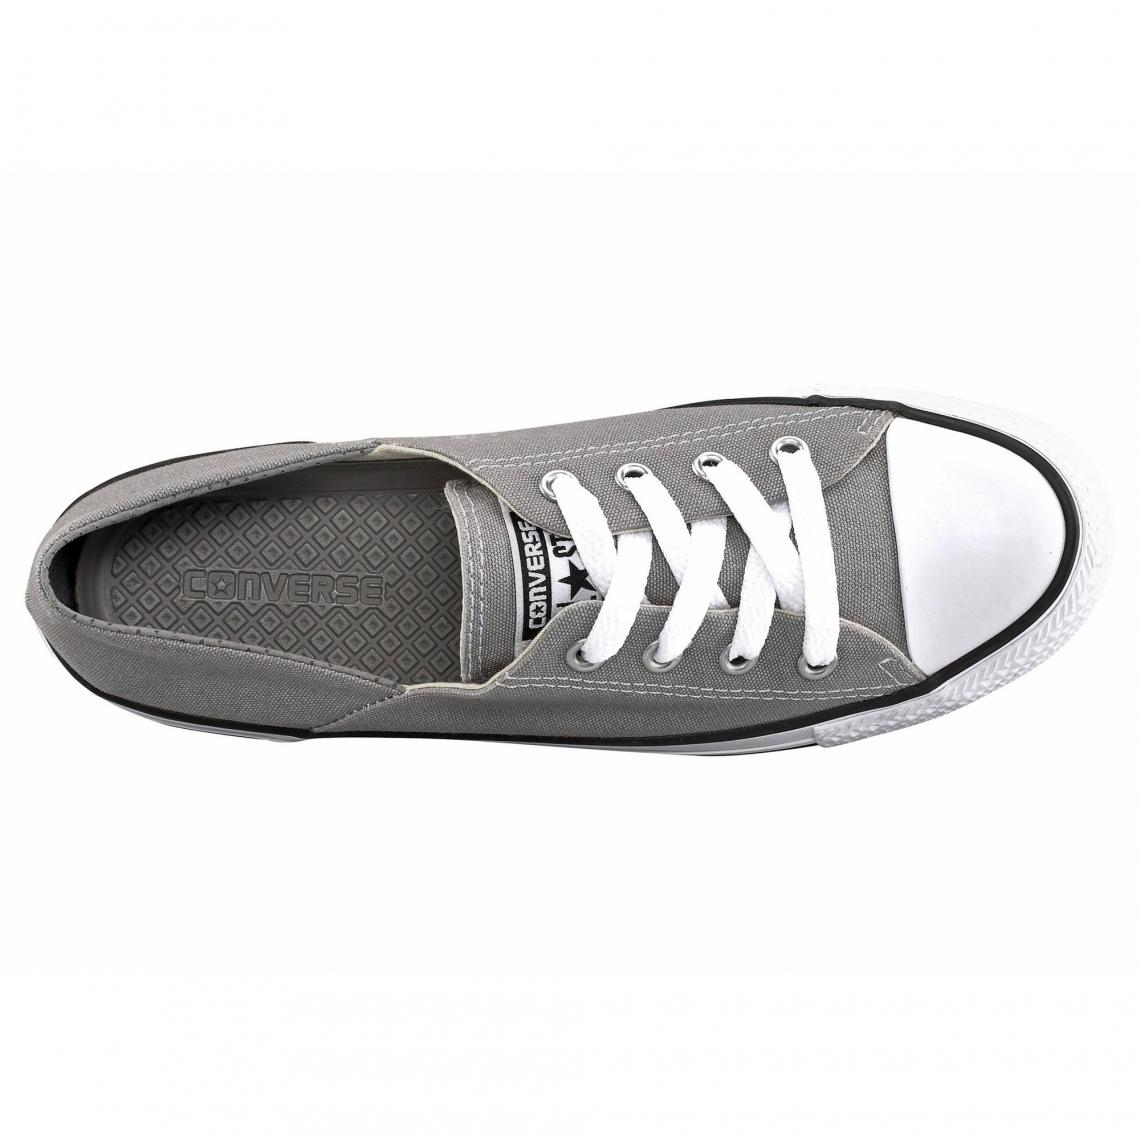 Converse Chuck Taylor All Star Cpral sneakers basses en